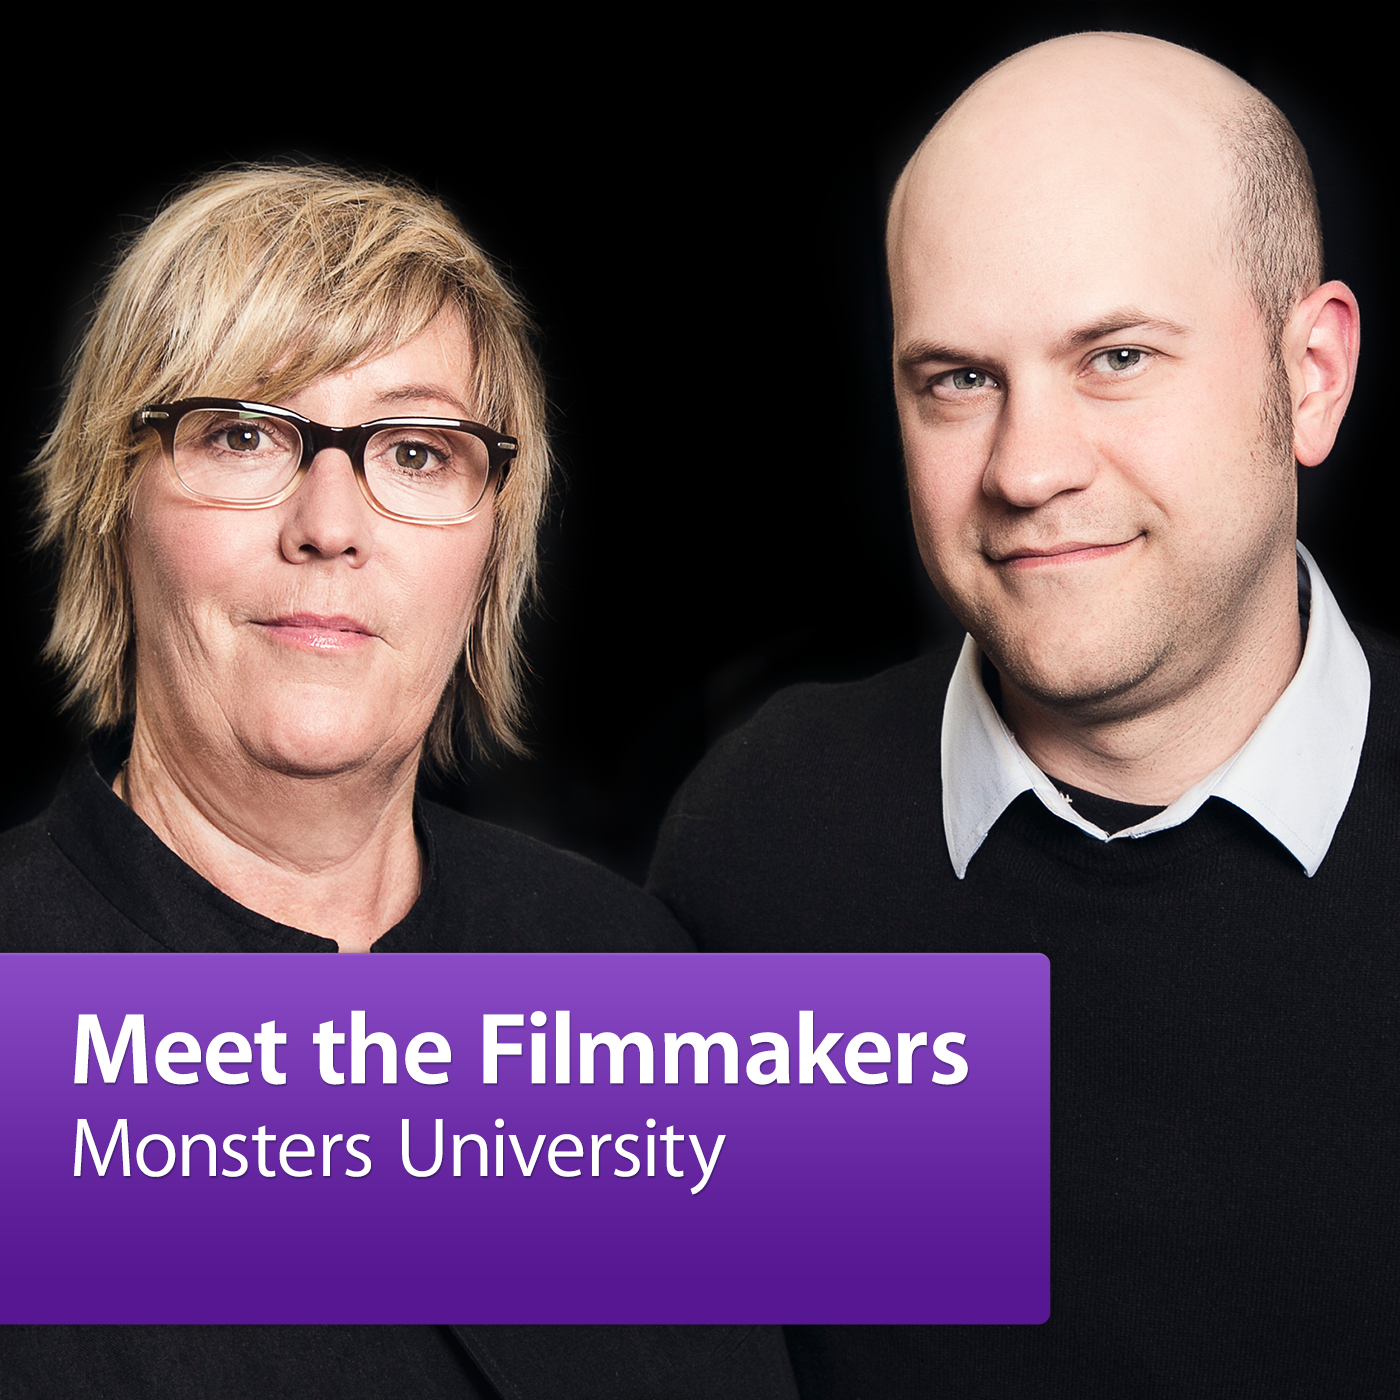 Monsters University: Meet the Filmmakers